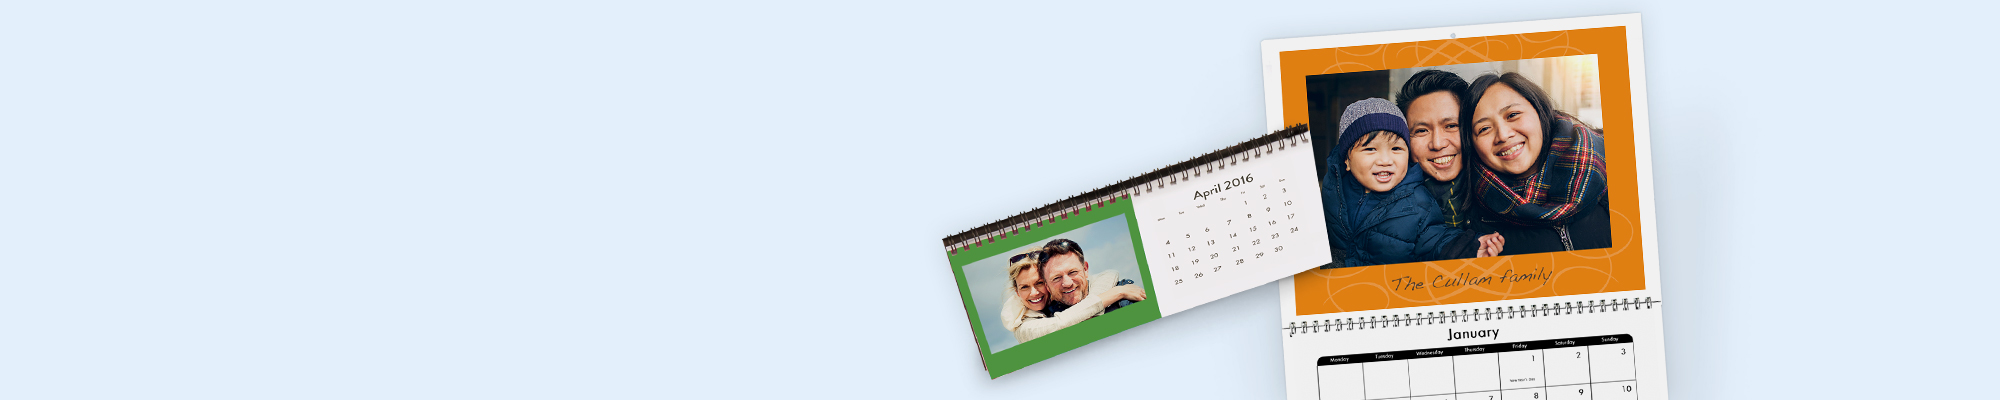 Photo Calendars Get organised and create a personalised calendar with your special dates and memorable photos. Choose from different styles including desk and various wall calendars. You can even start your calendar in any month of your choosing.